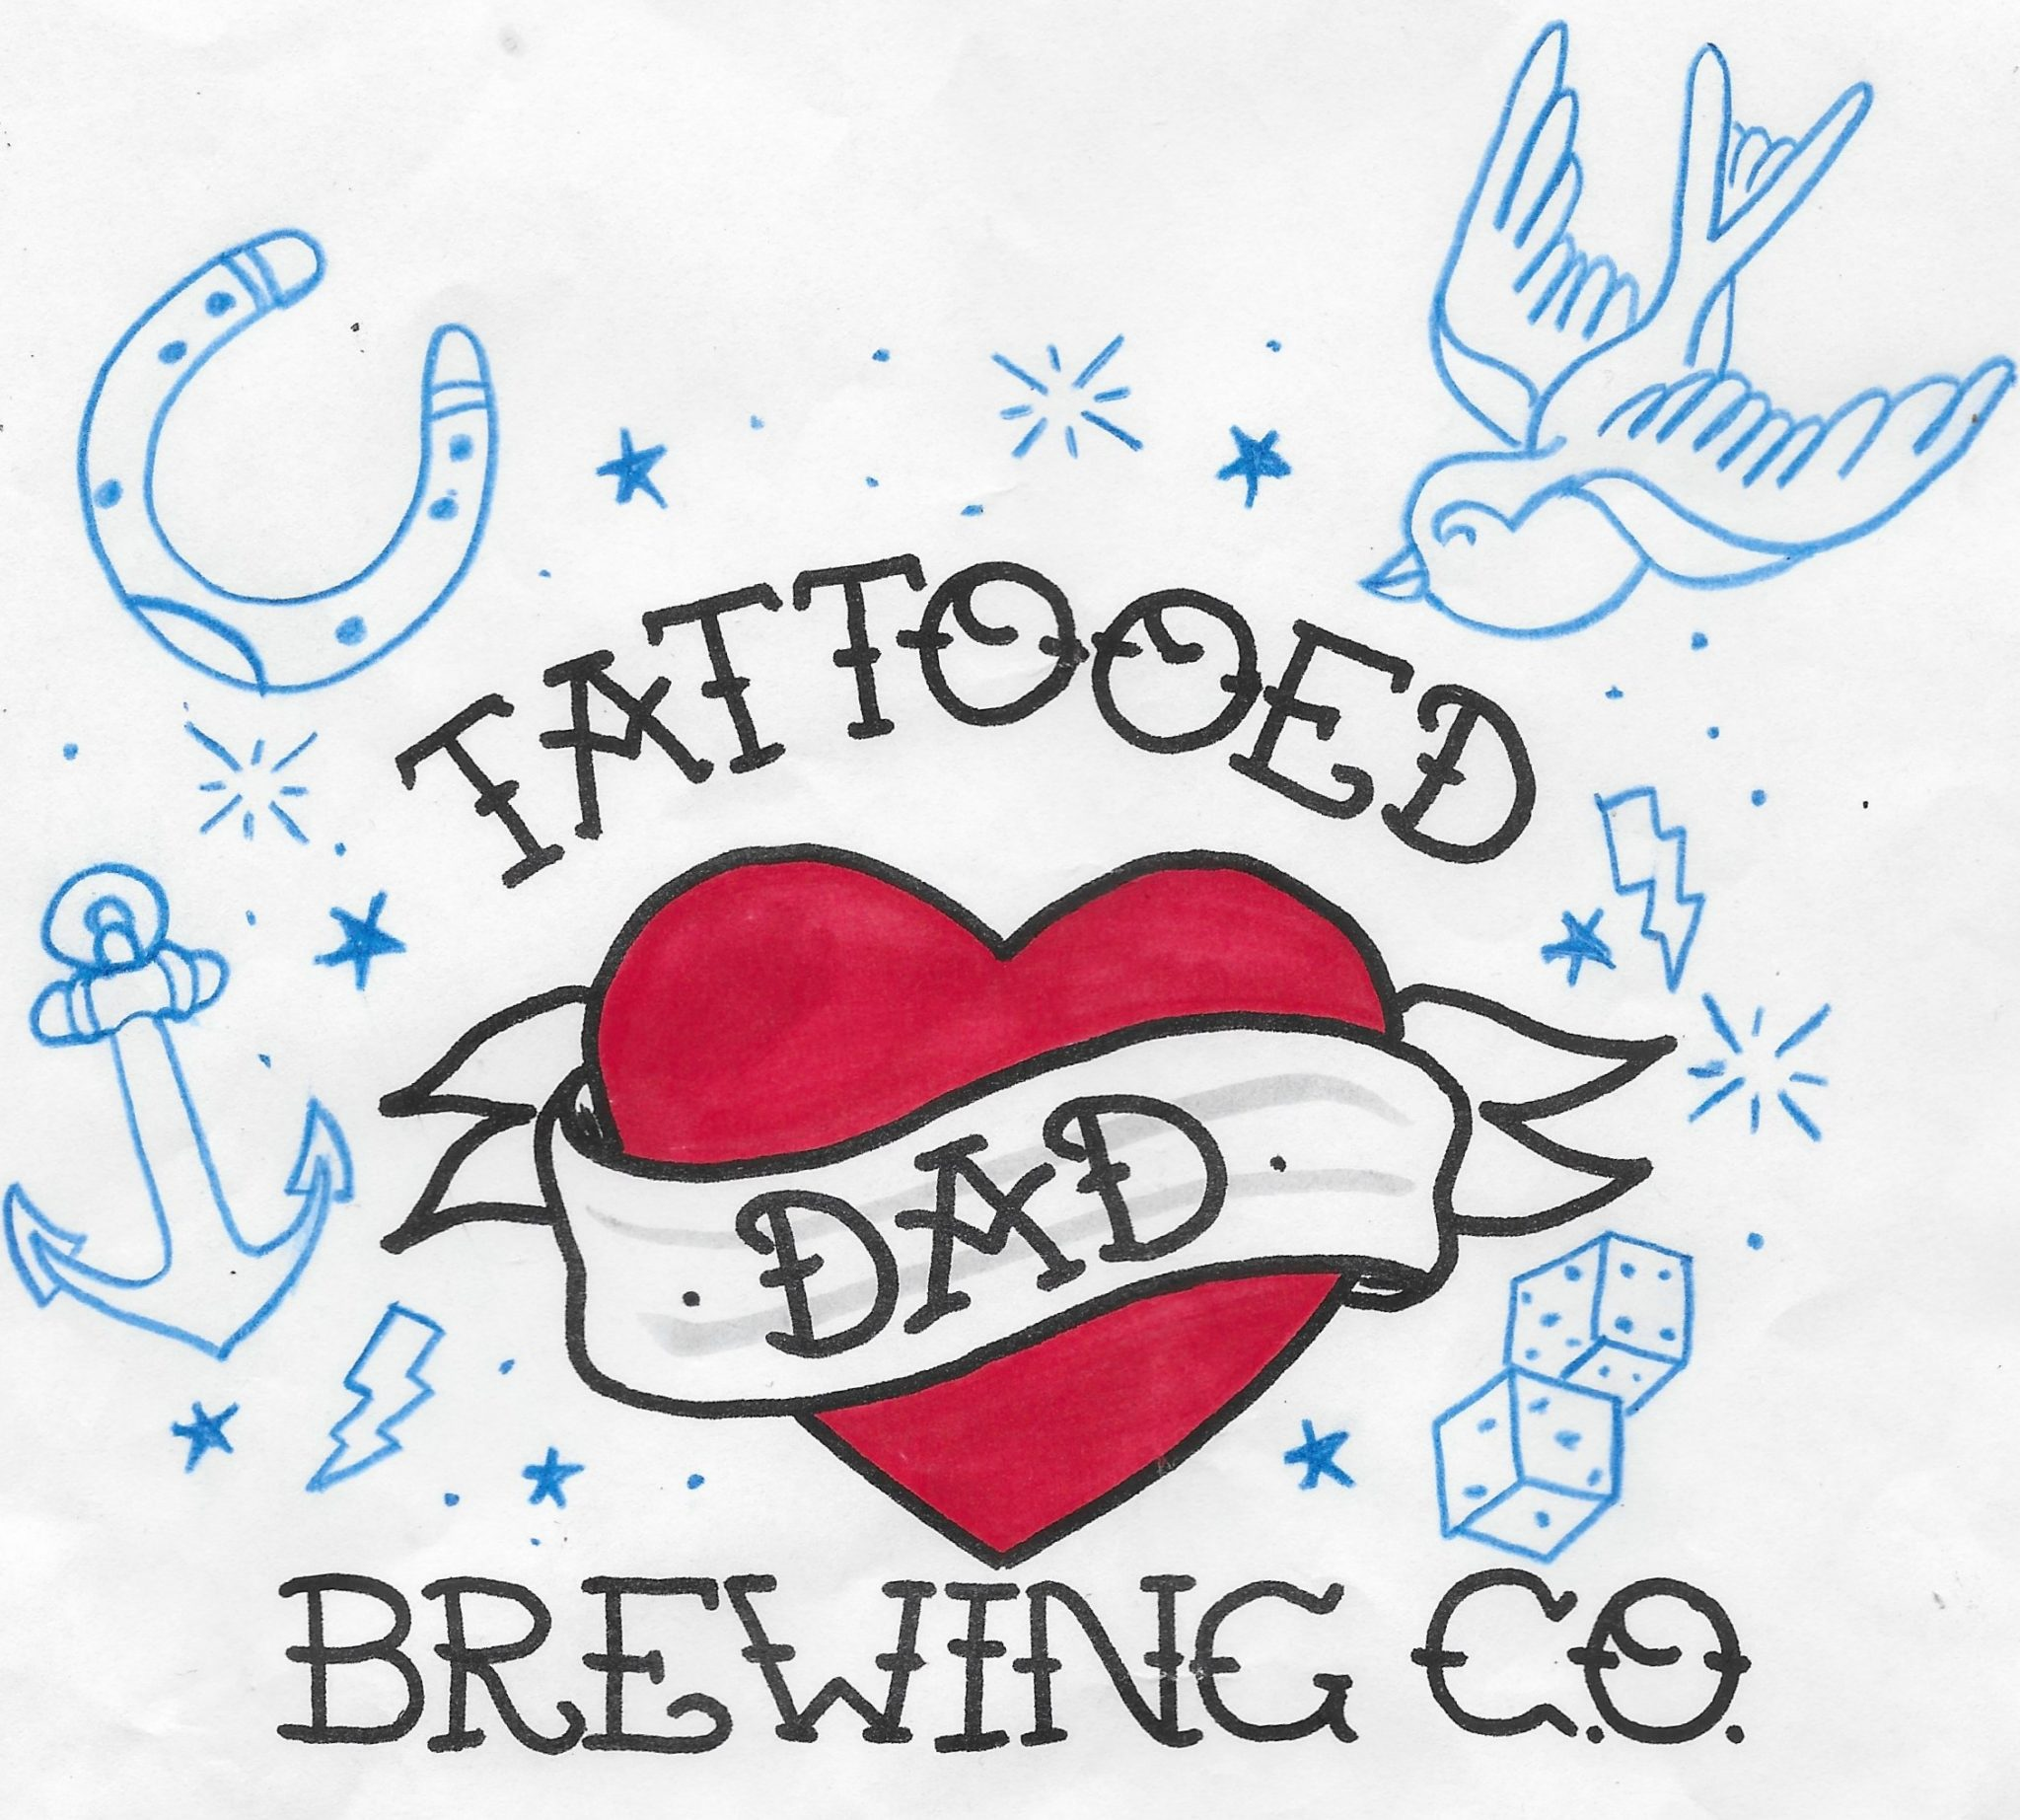 Tattooed Dad Brewing Co.